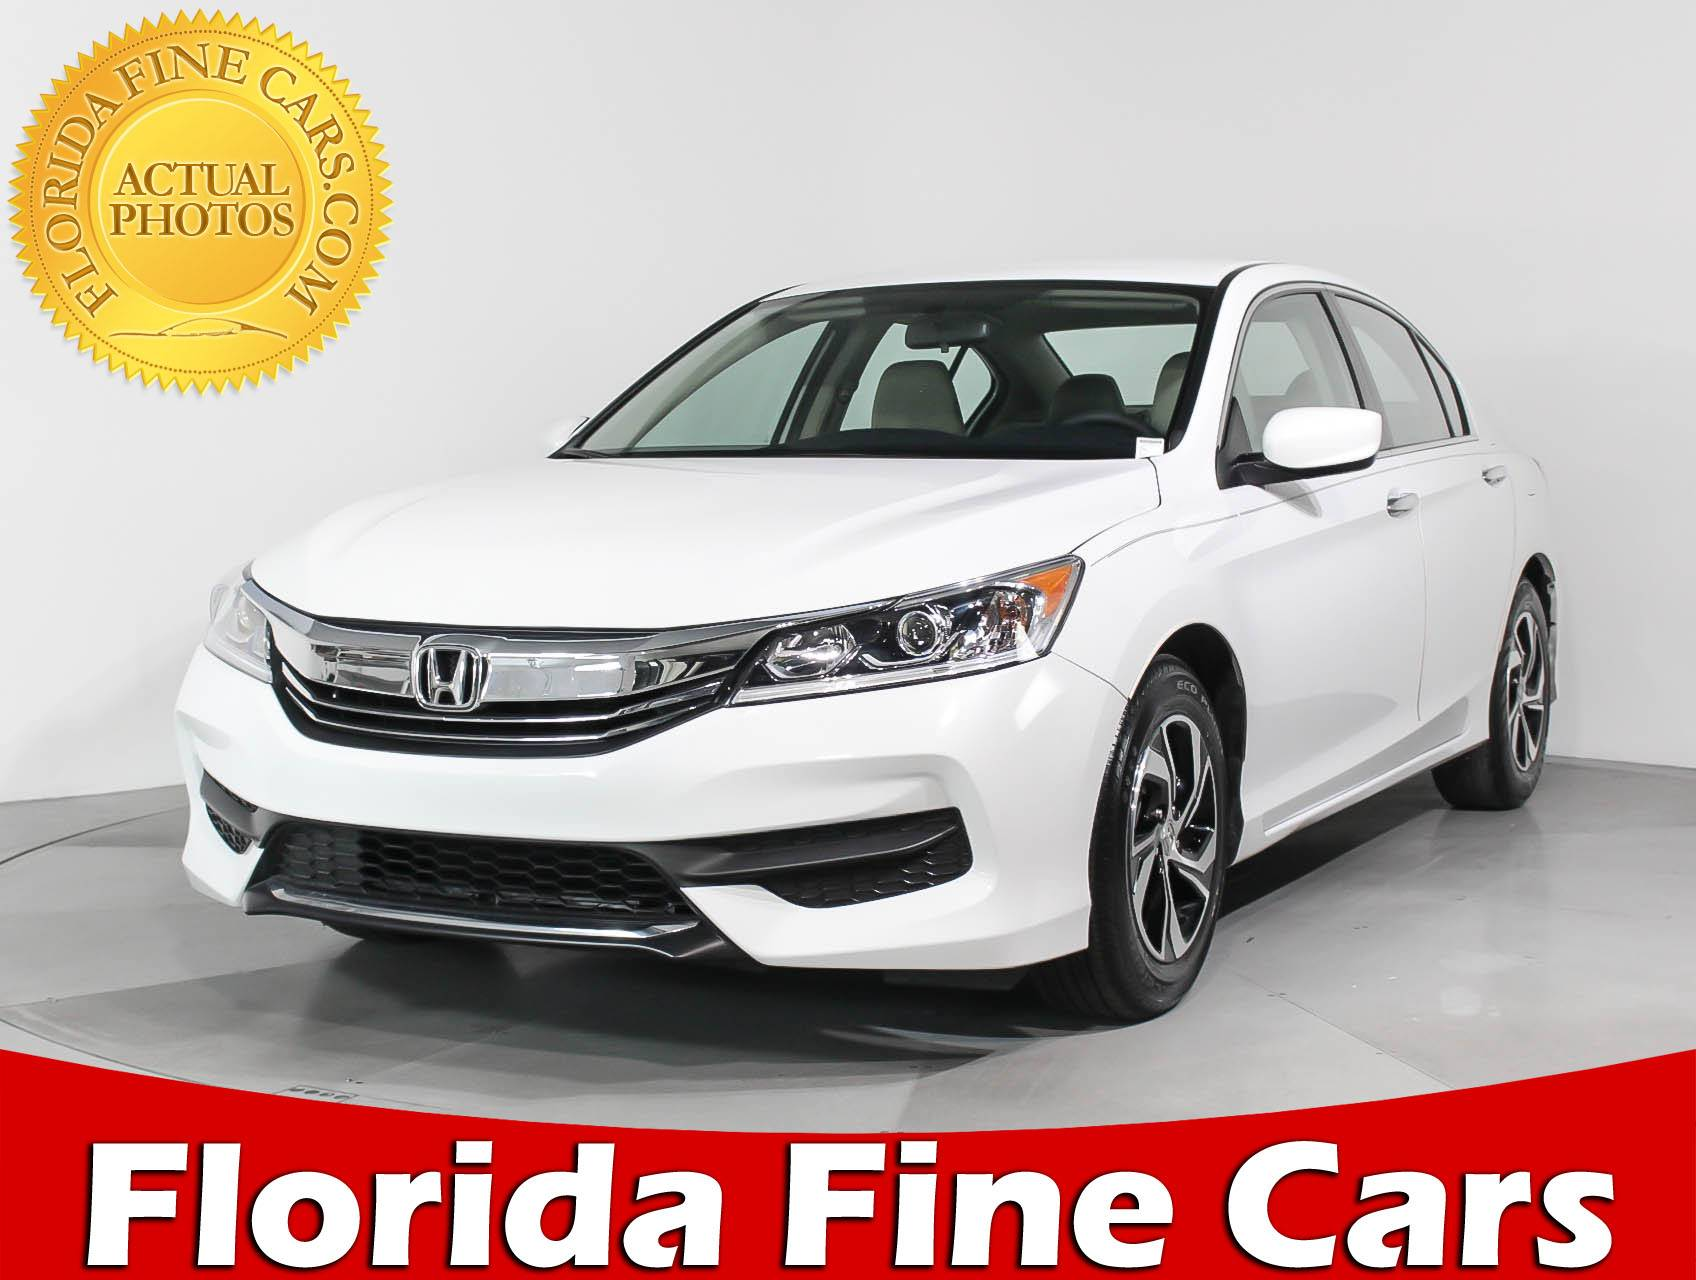 Used 2016 HONDA ACCORD LX Sedan For Sale In HOLLYWOOD, FL | 92096 | Florida  Fine Cars